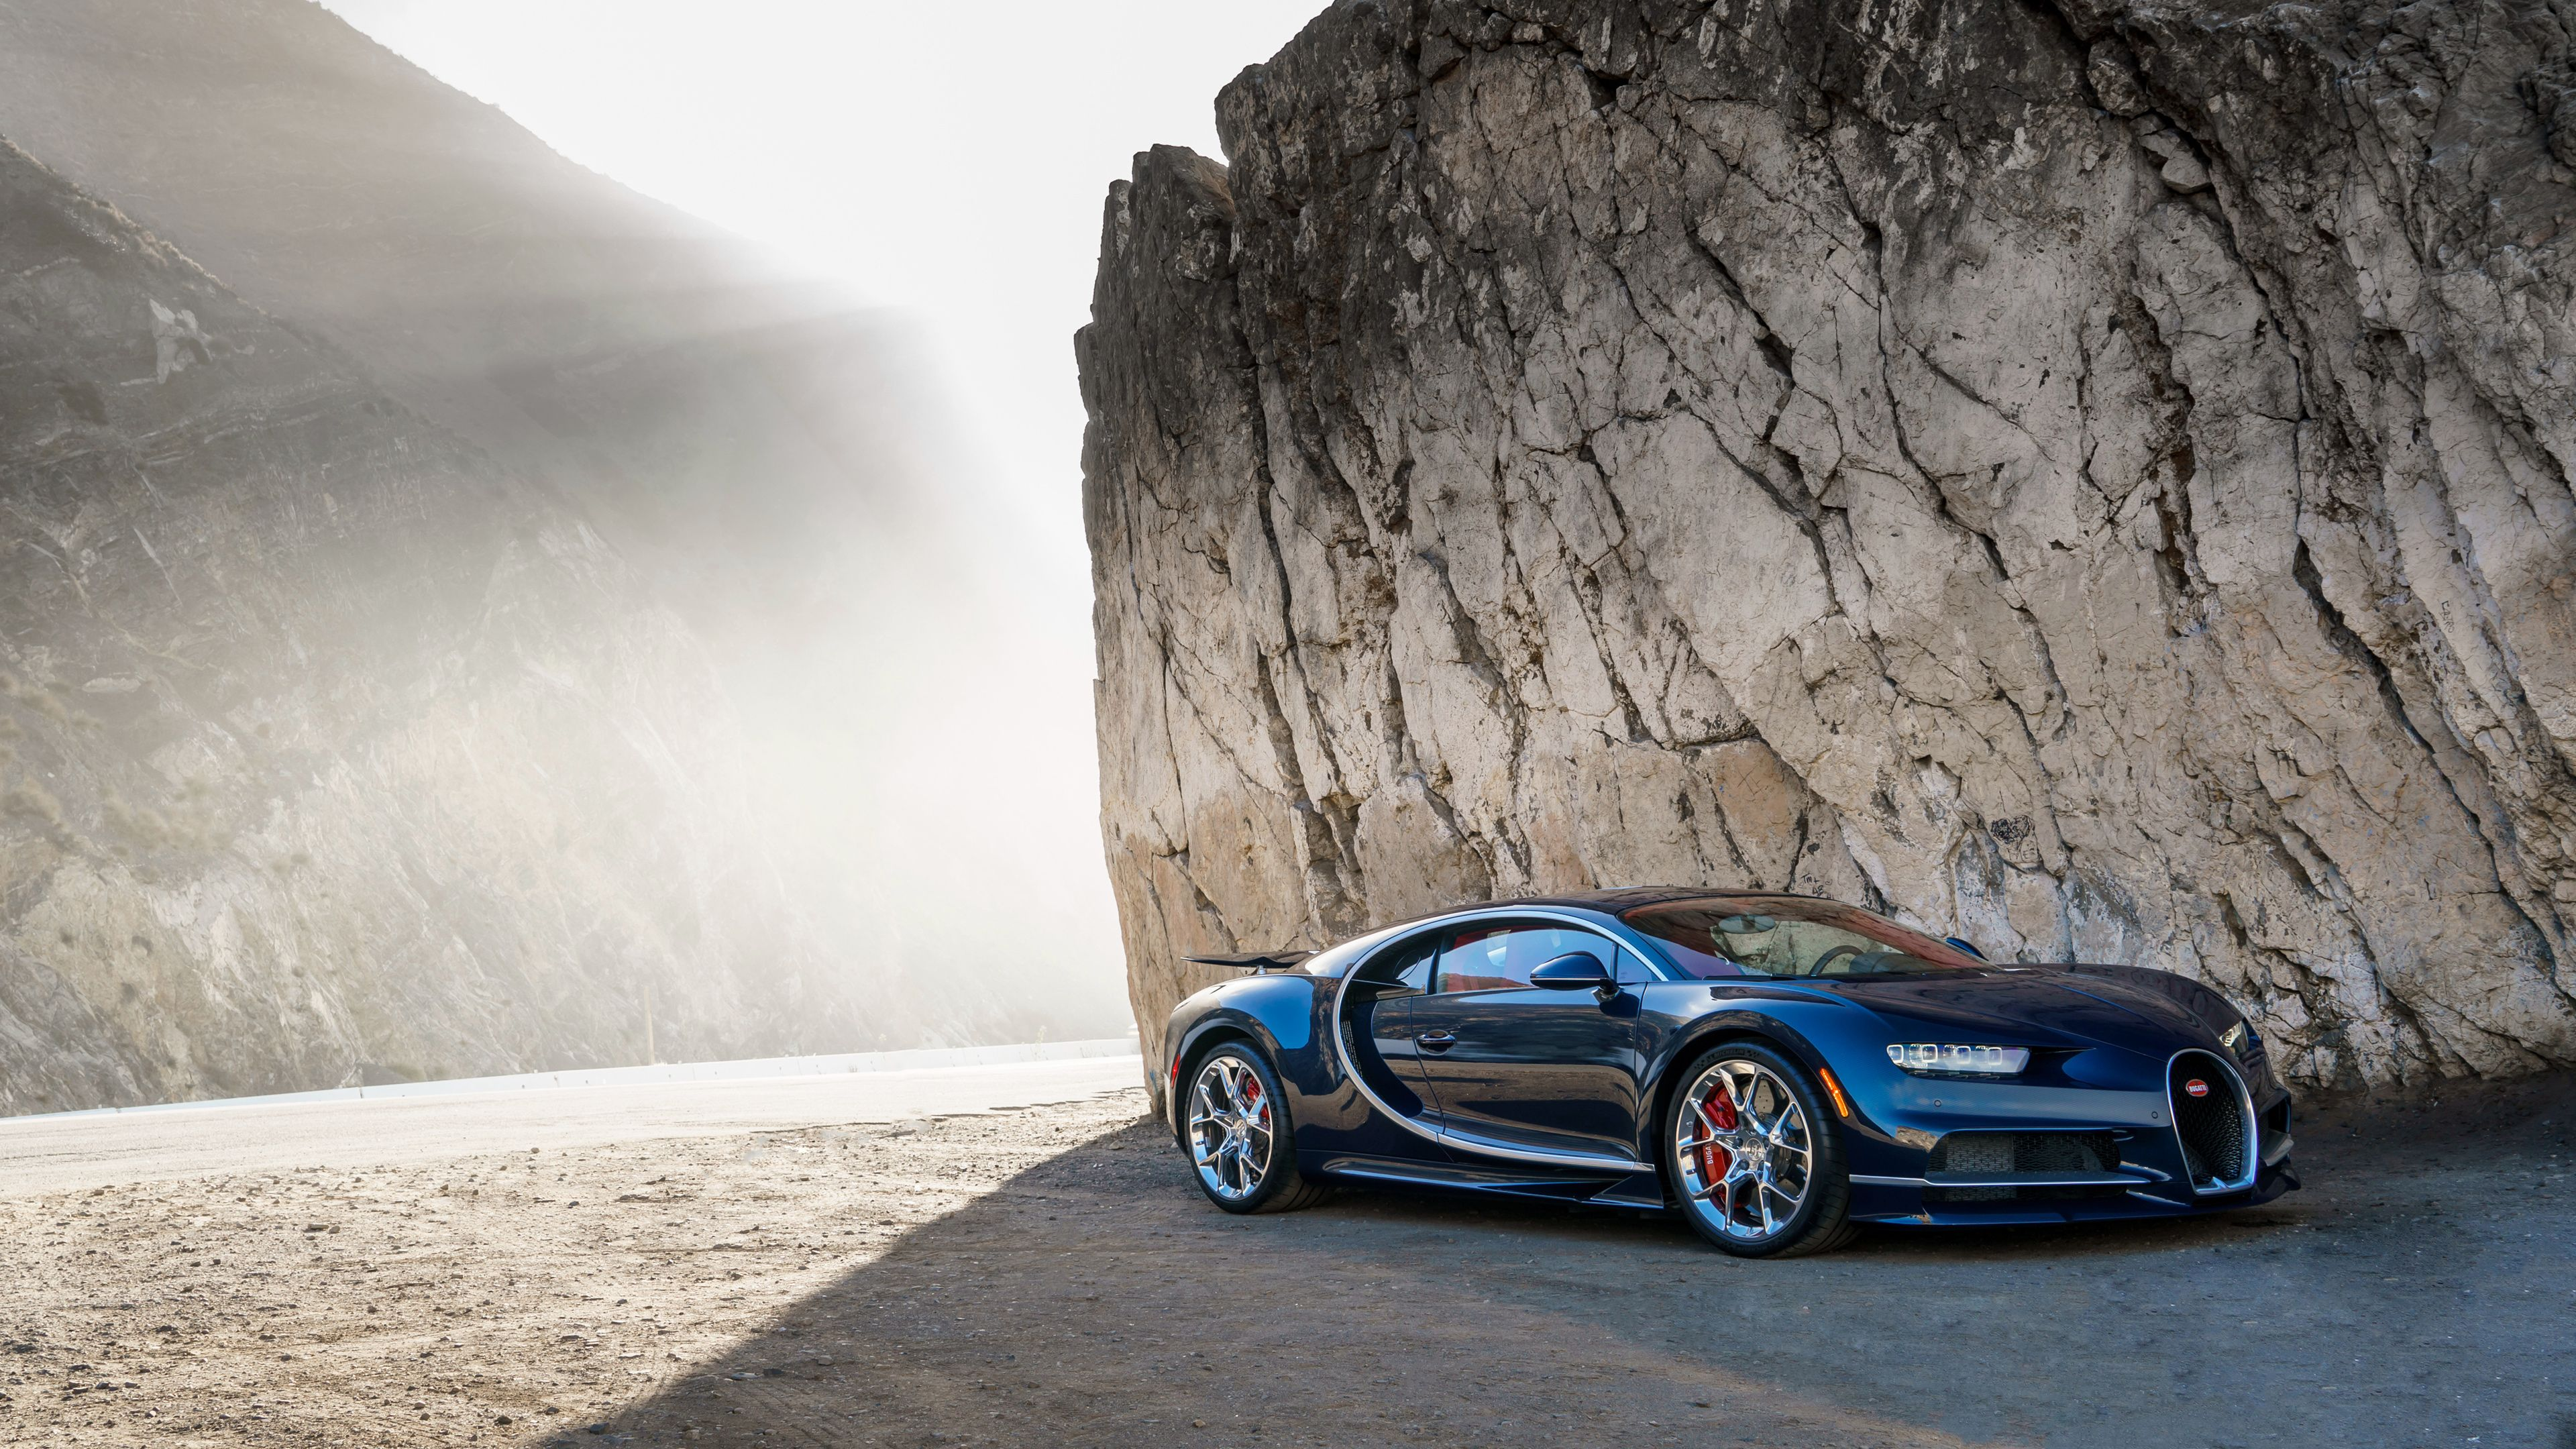 Bugatti Chiron 5 Things You Need To Know Bugatti Chiron Bugatti Sports Car Wallpaper